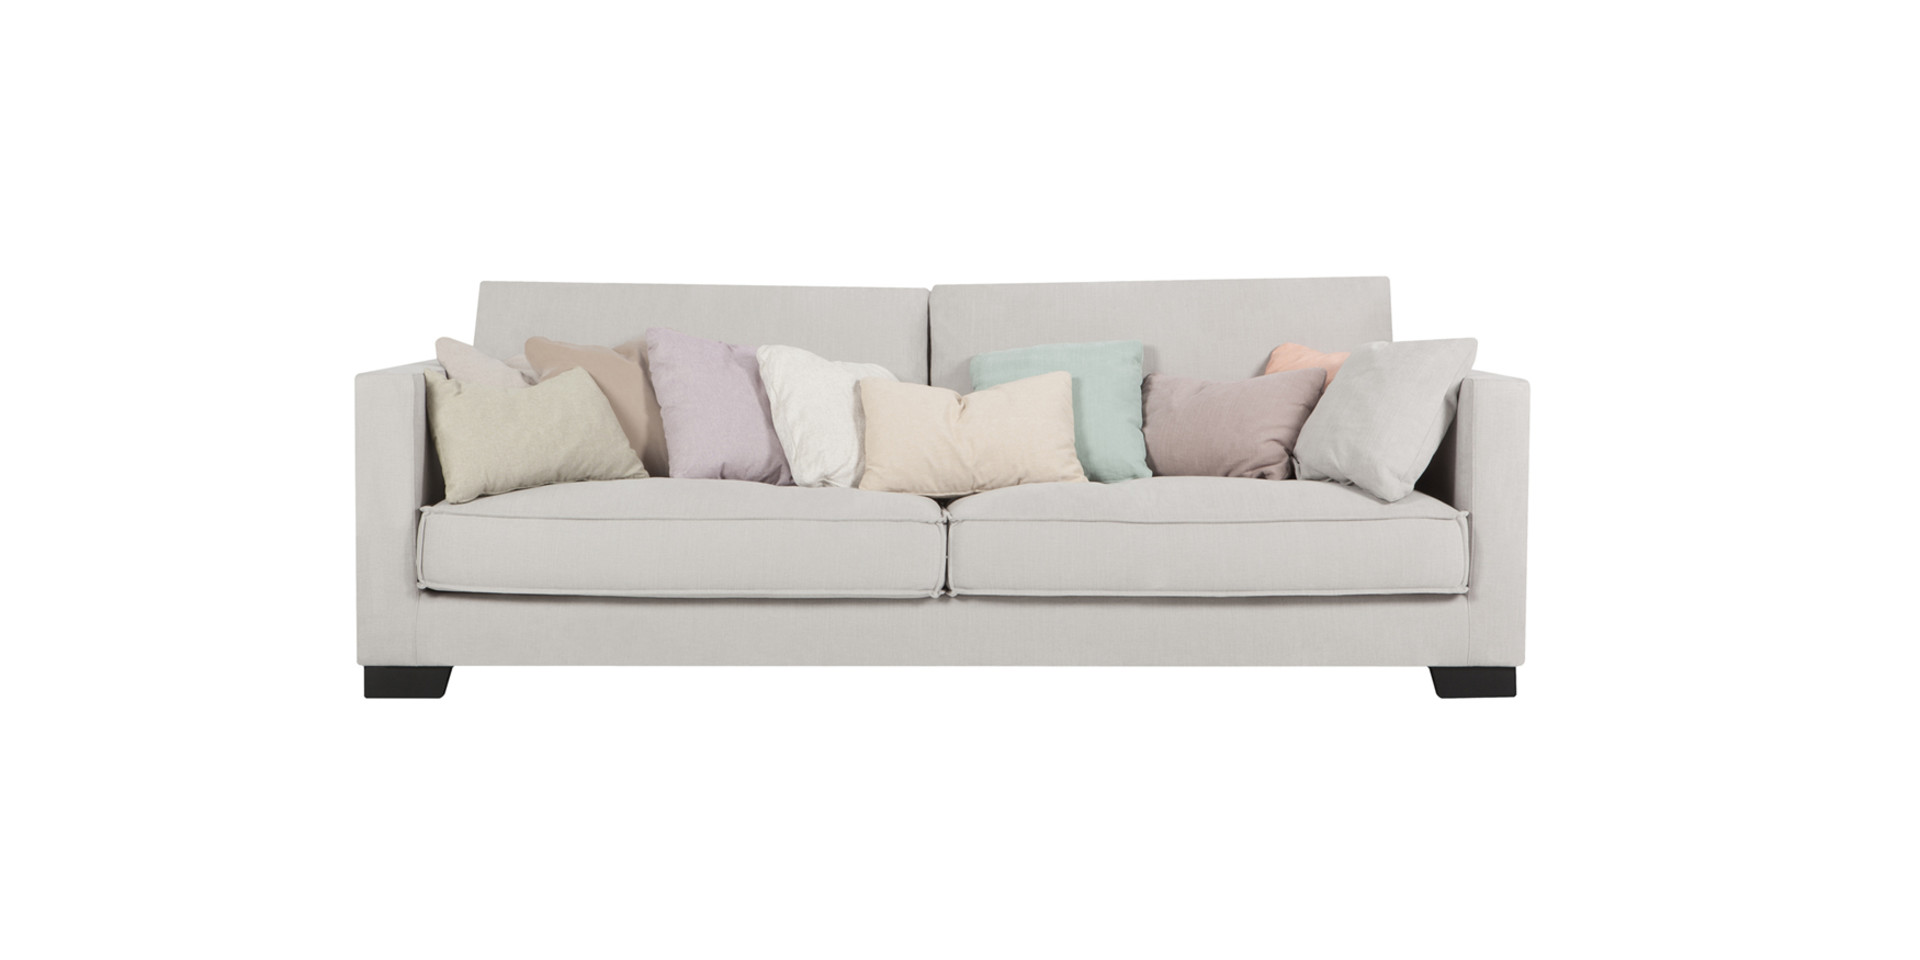 sits-cloud-canape-3seater_caleido3790_light_beige_1